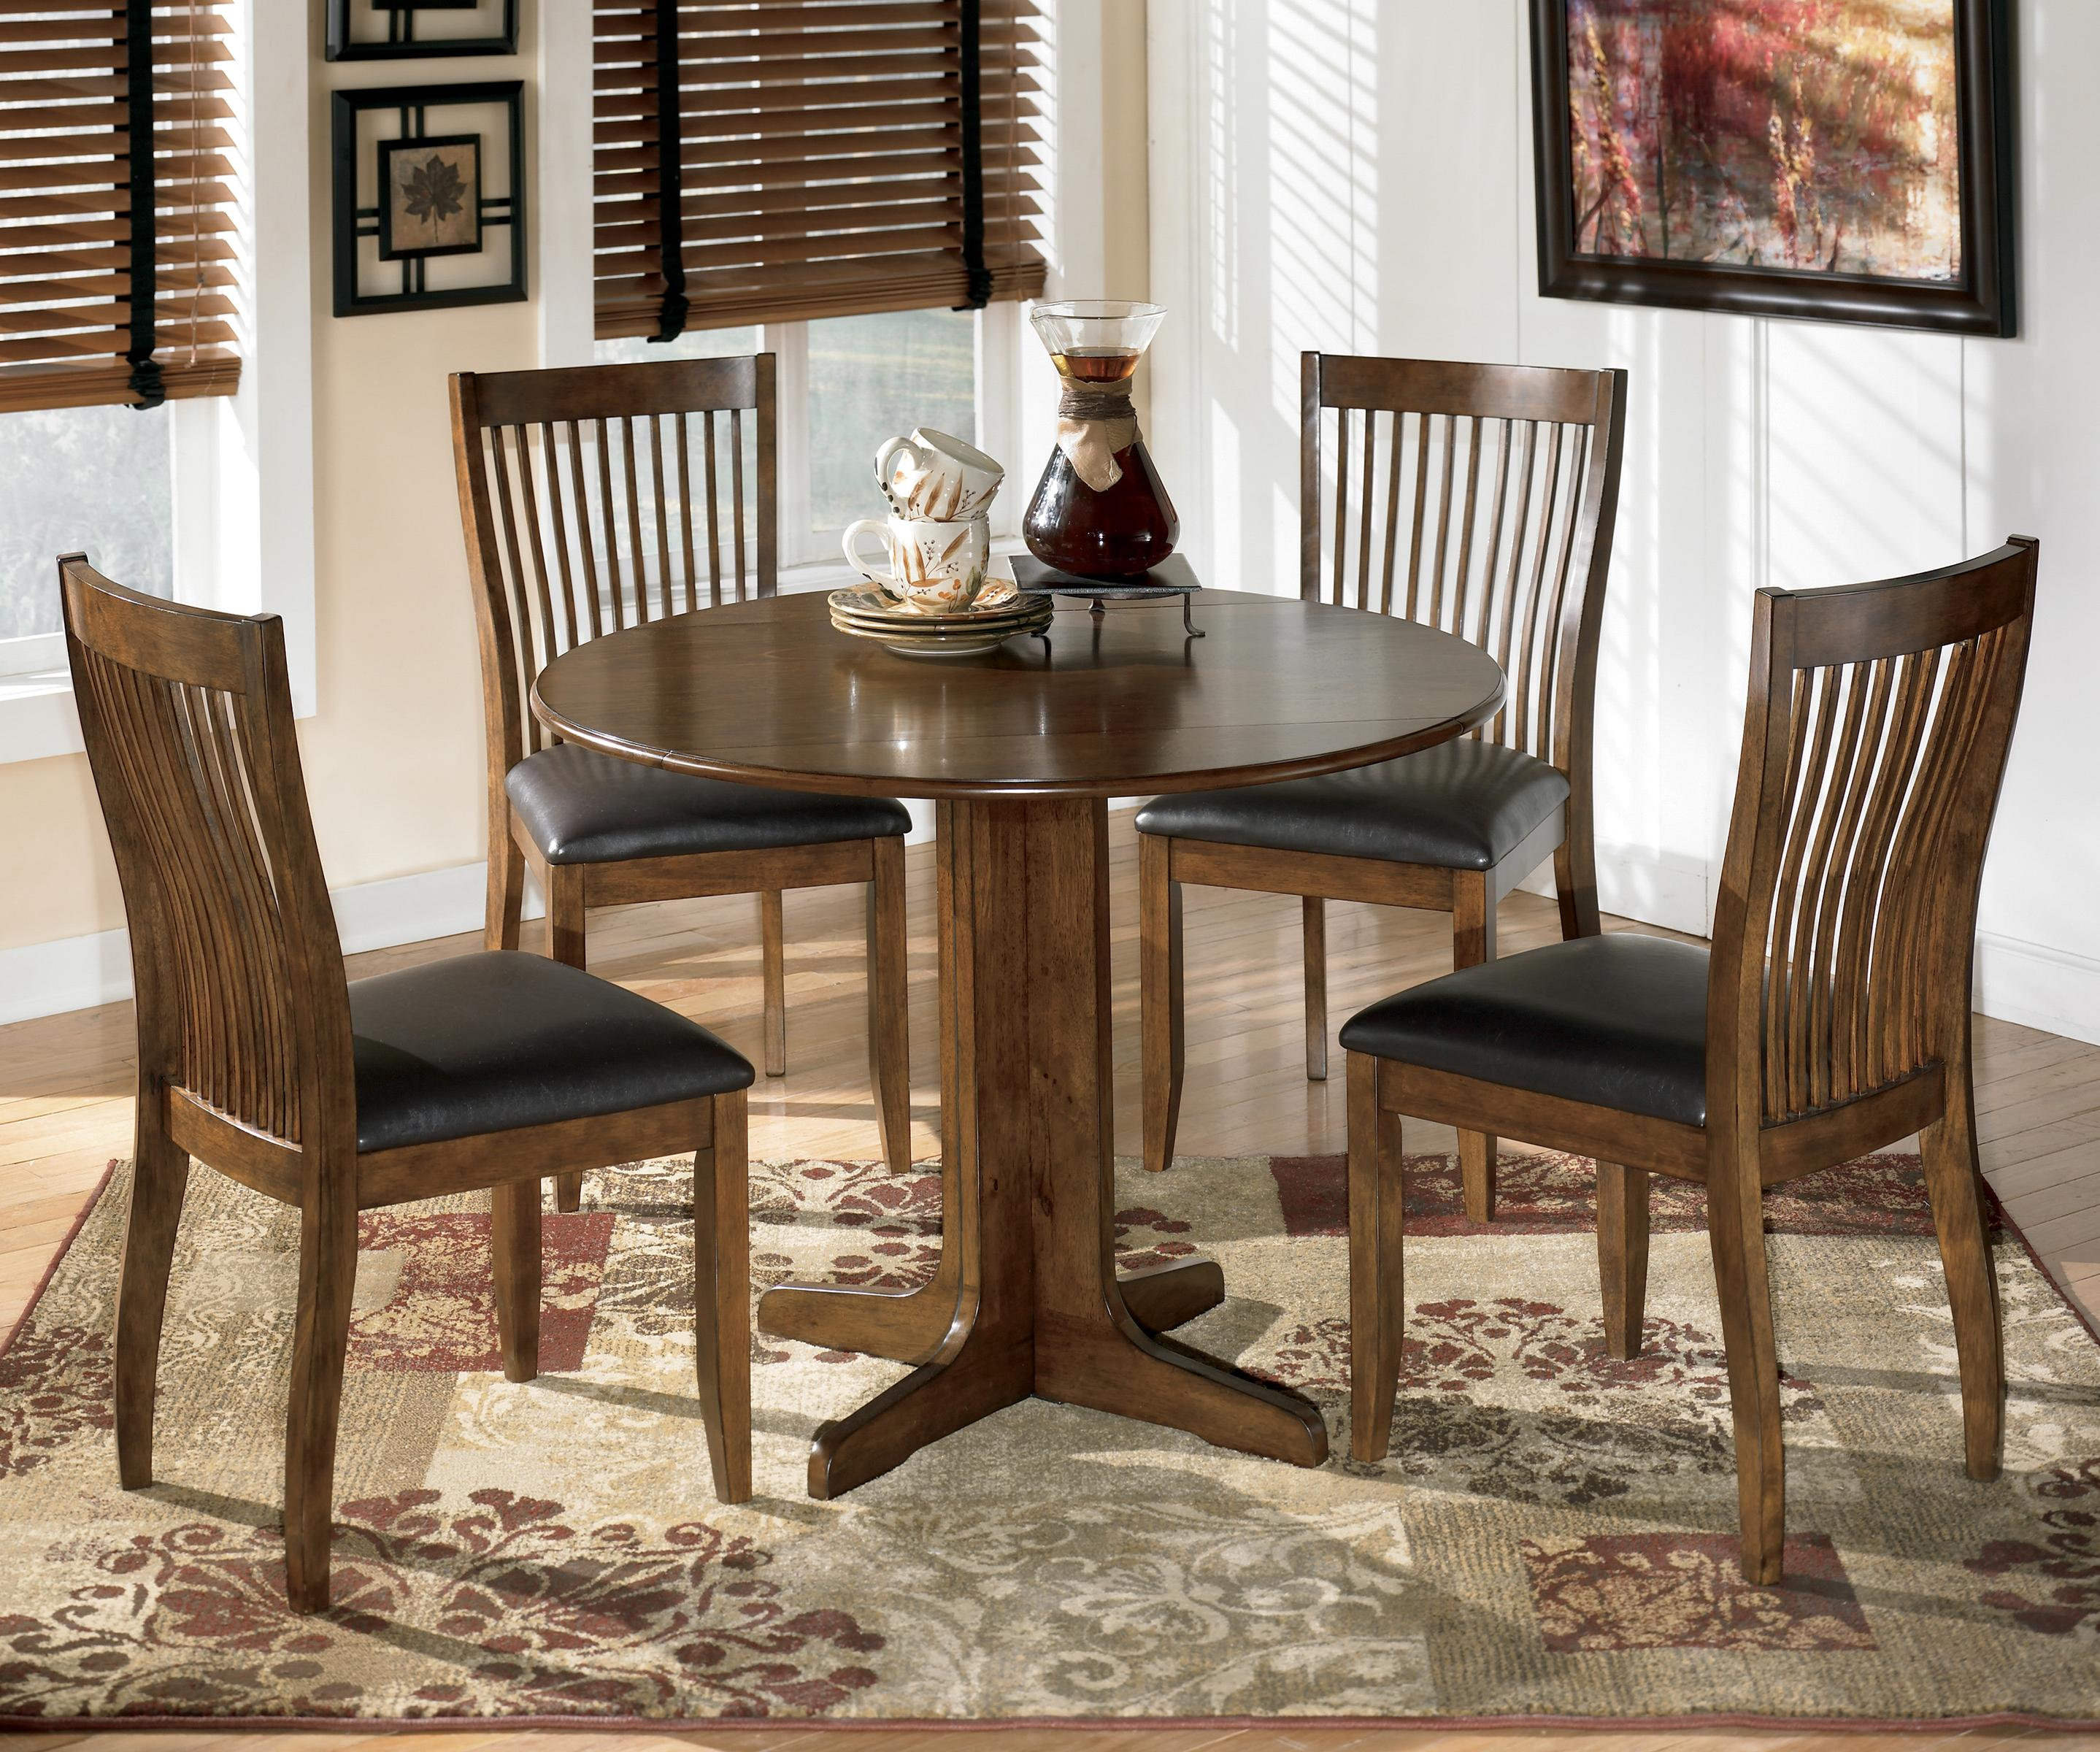 Drop Leaf Table With Chairs 5 Piece Round Drop Leaf Table Set By Signature Design By